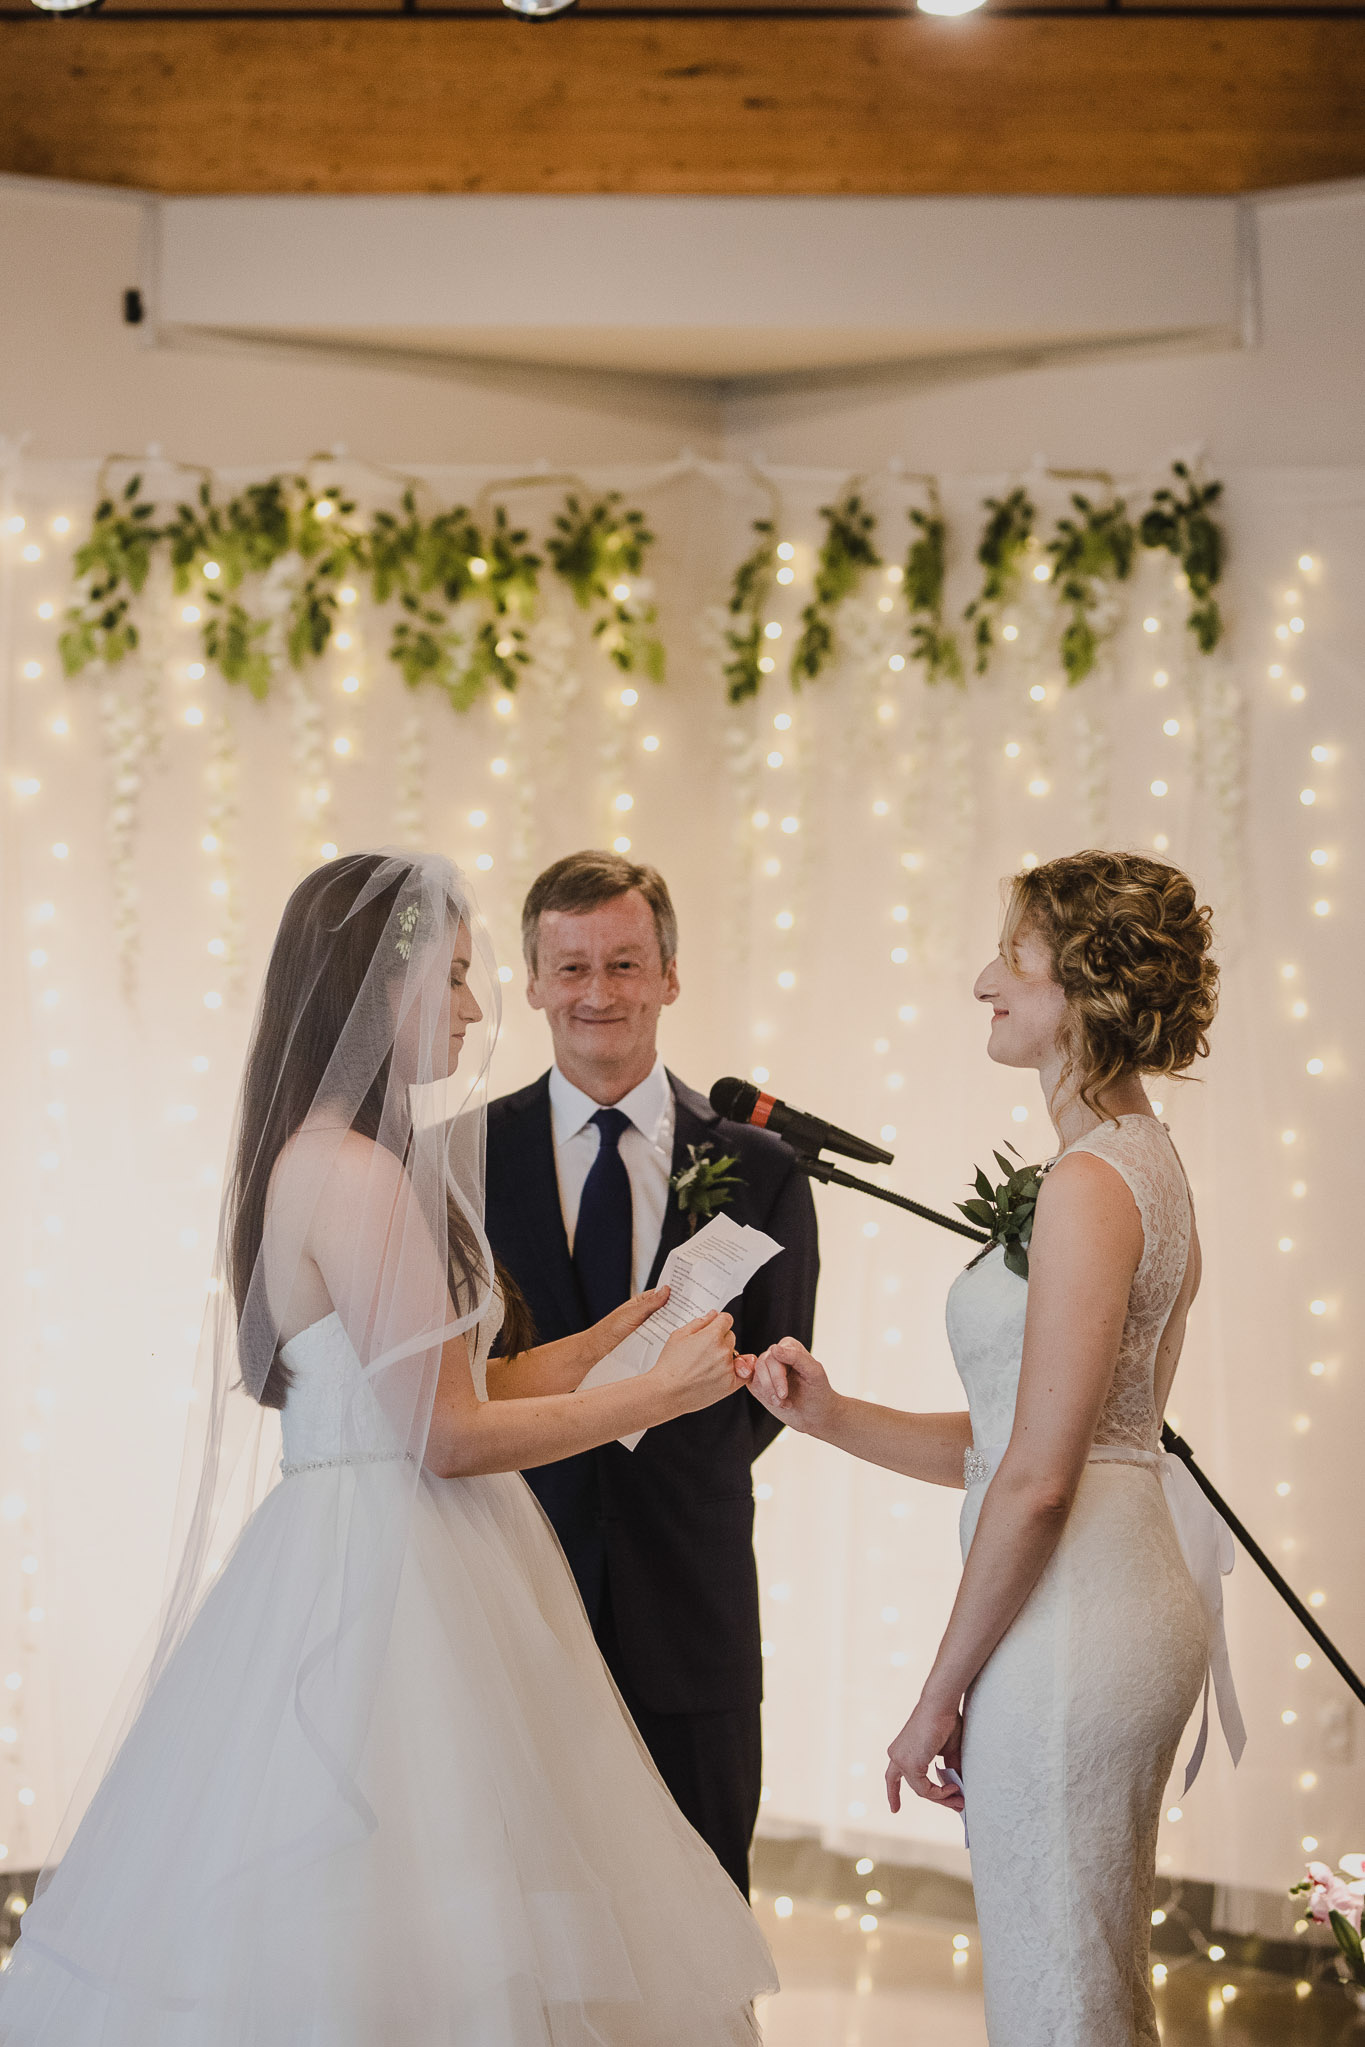 Balls Falls Conservation Area Wedding - pinky swear at the alter